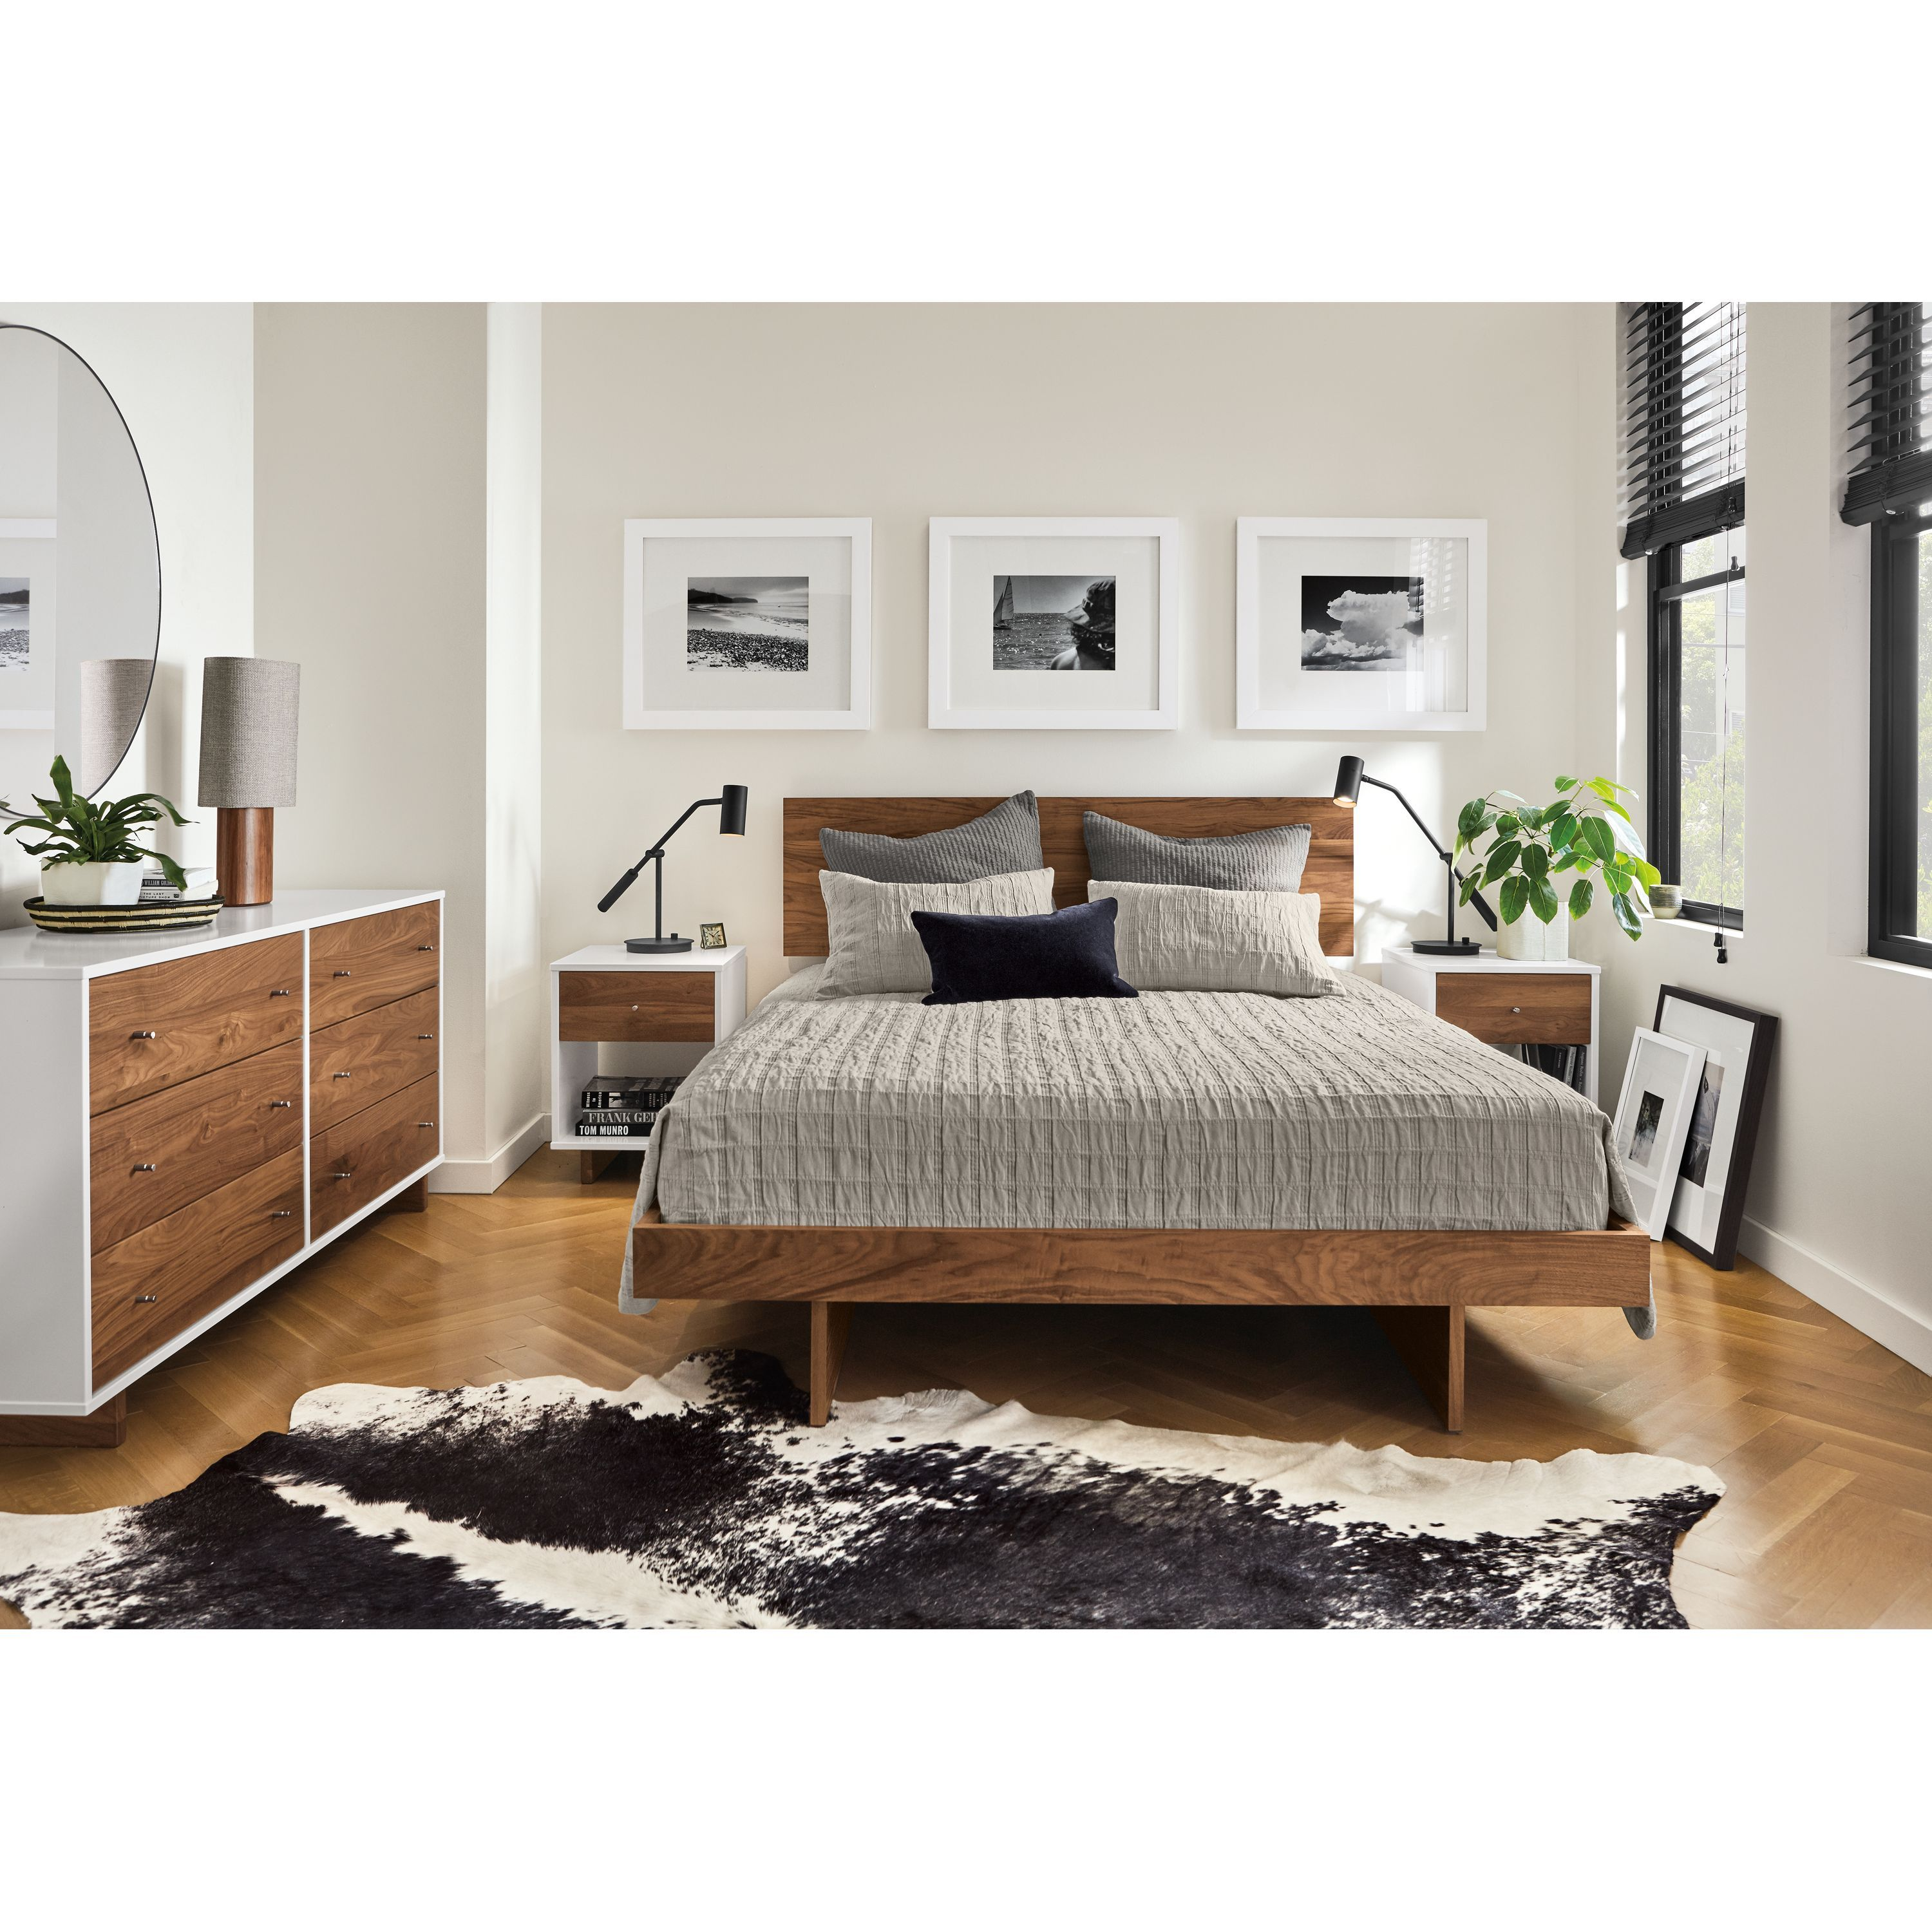 Modern Bedroom Furniture Stores: Kennewick Coverlet In 2019